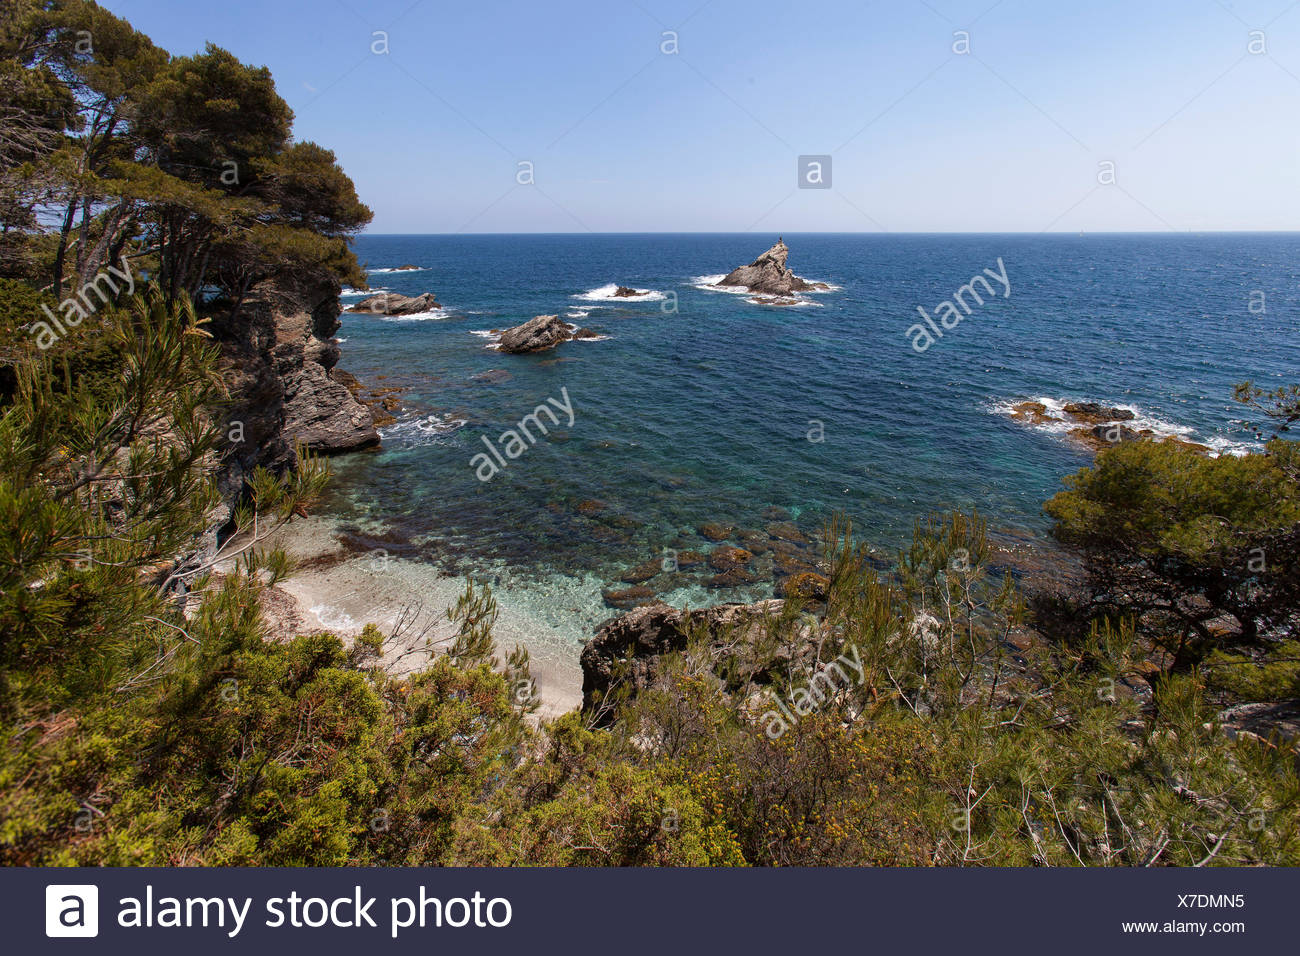 Conifer - Mediterranean Sea Var 83 - Stock Image